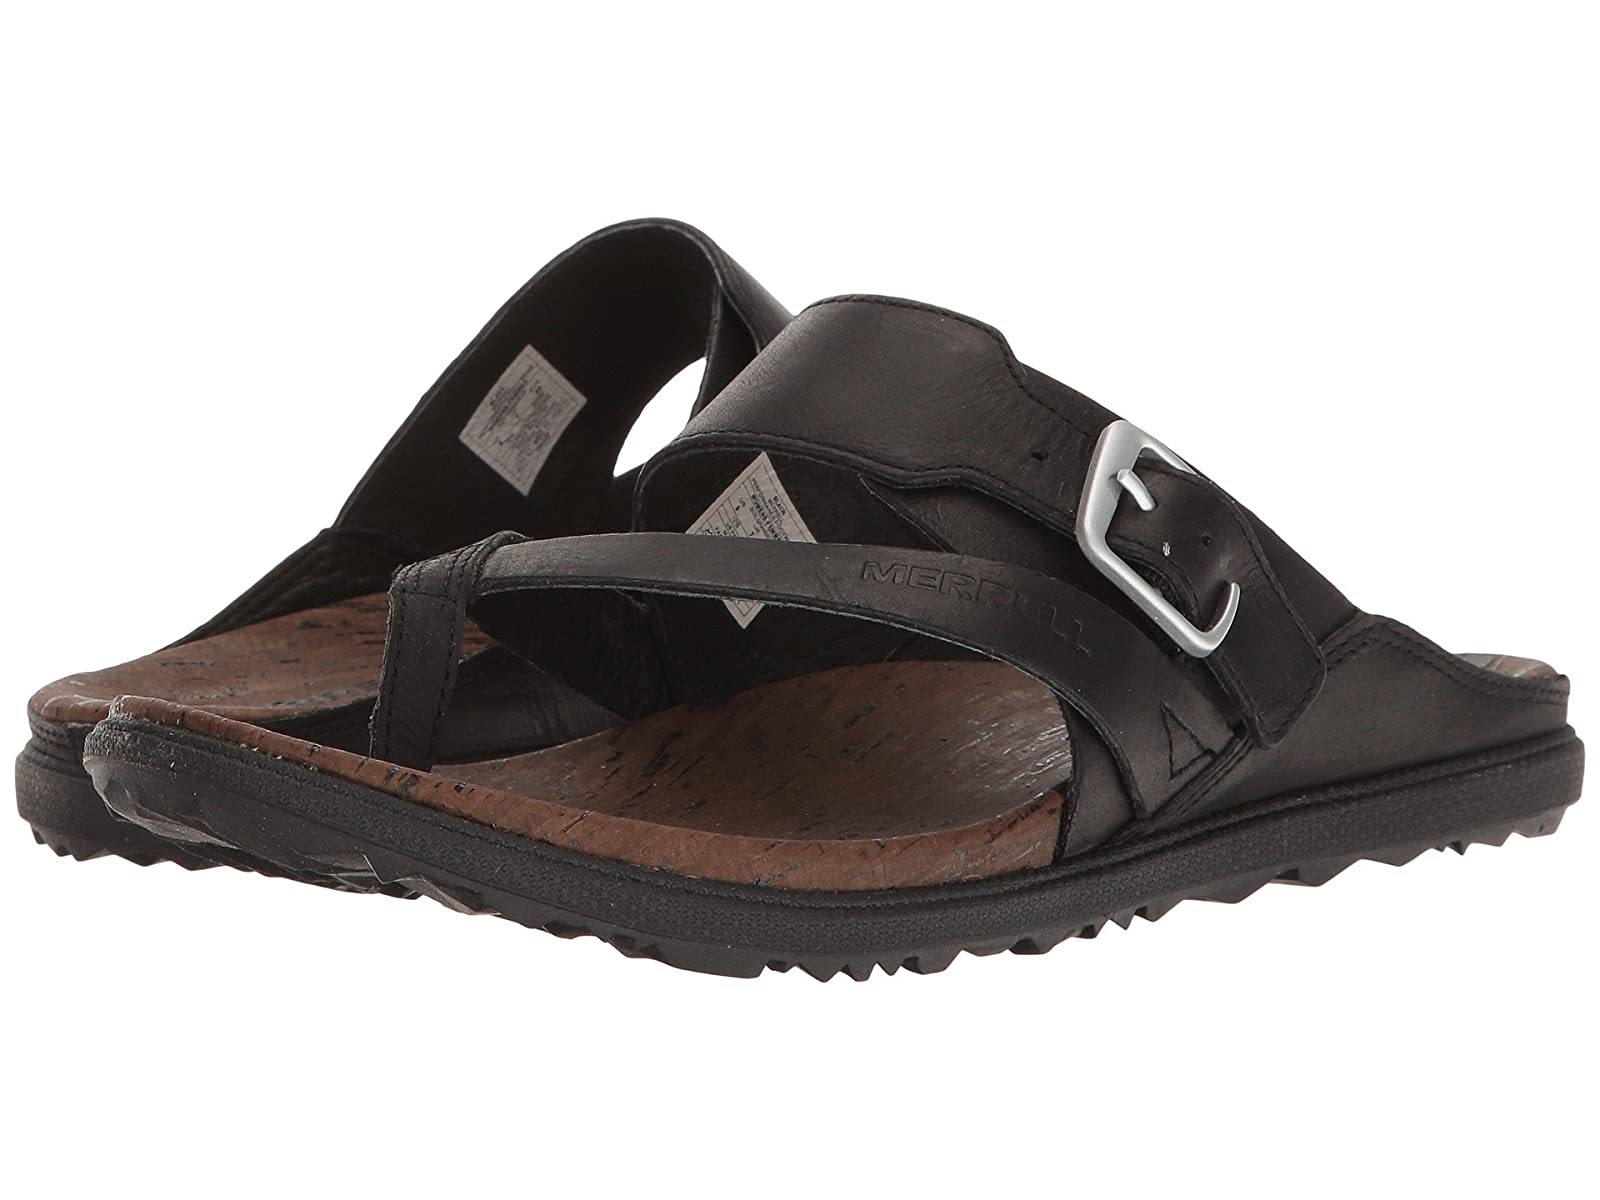 Merrell Around Town Thong BuckleCheap and distinctive eye-catching shoes